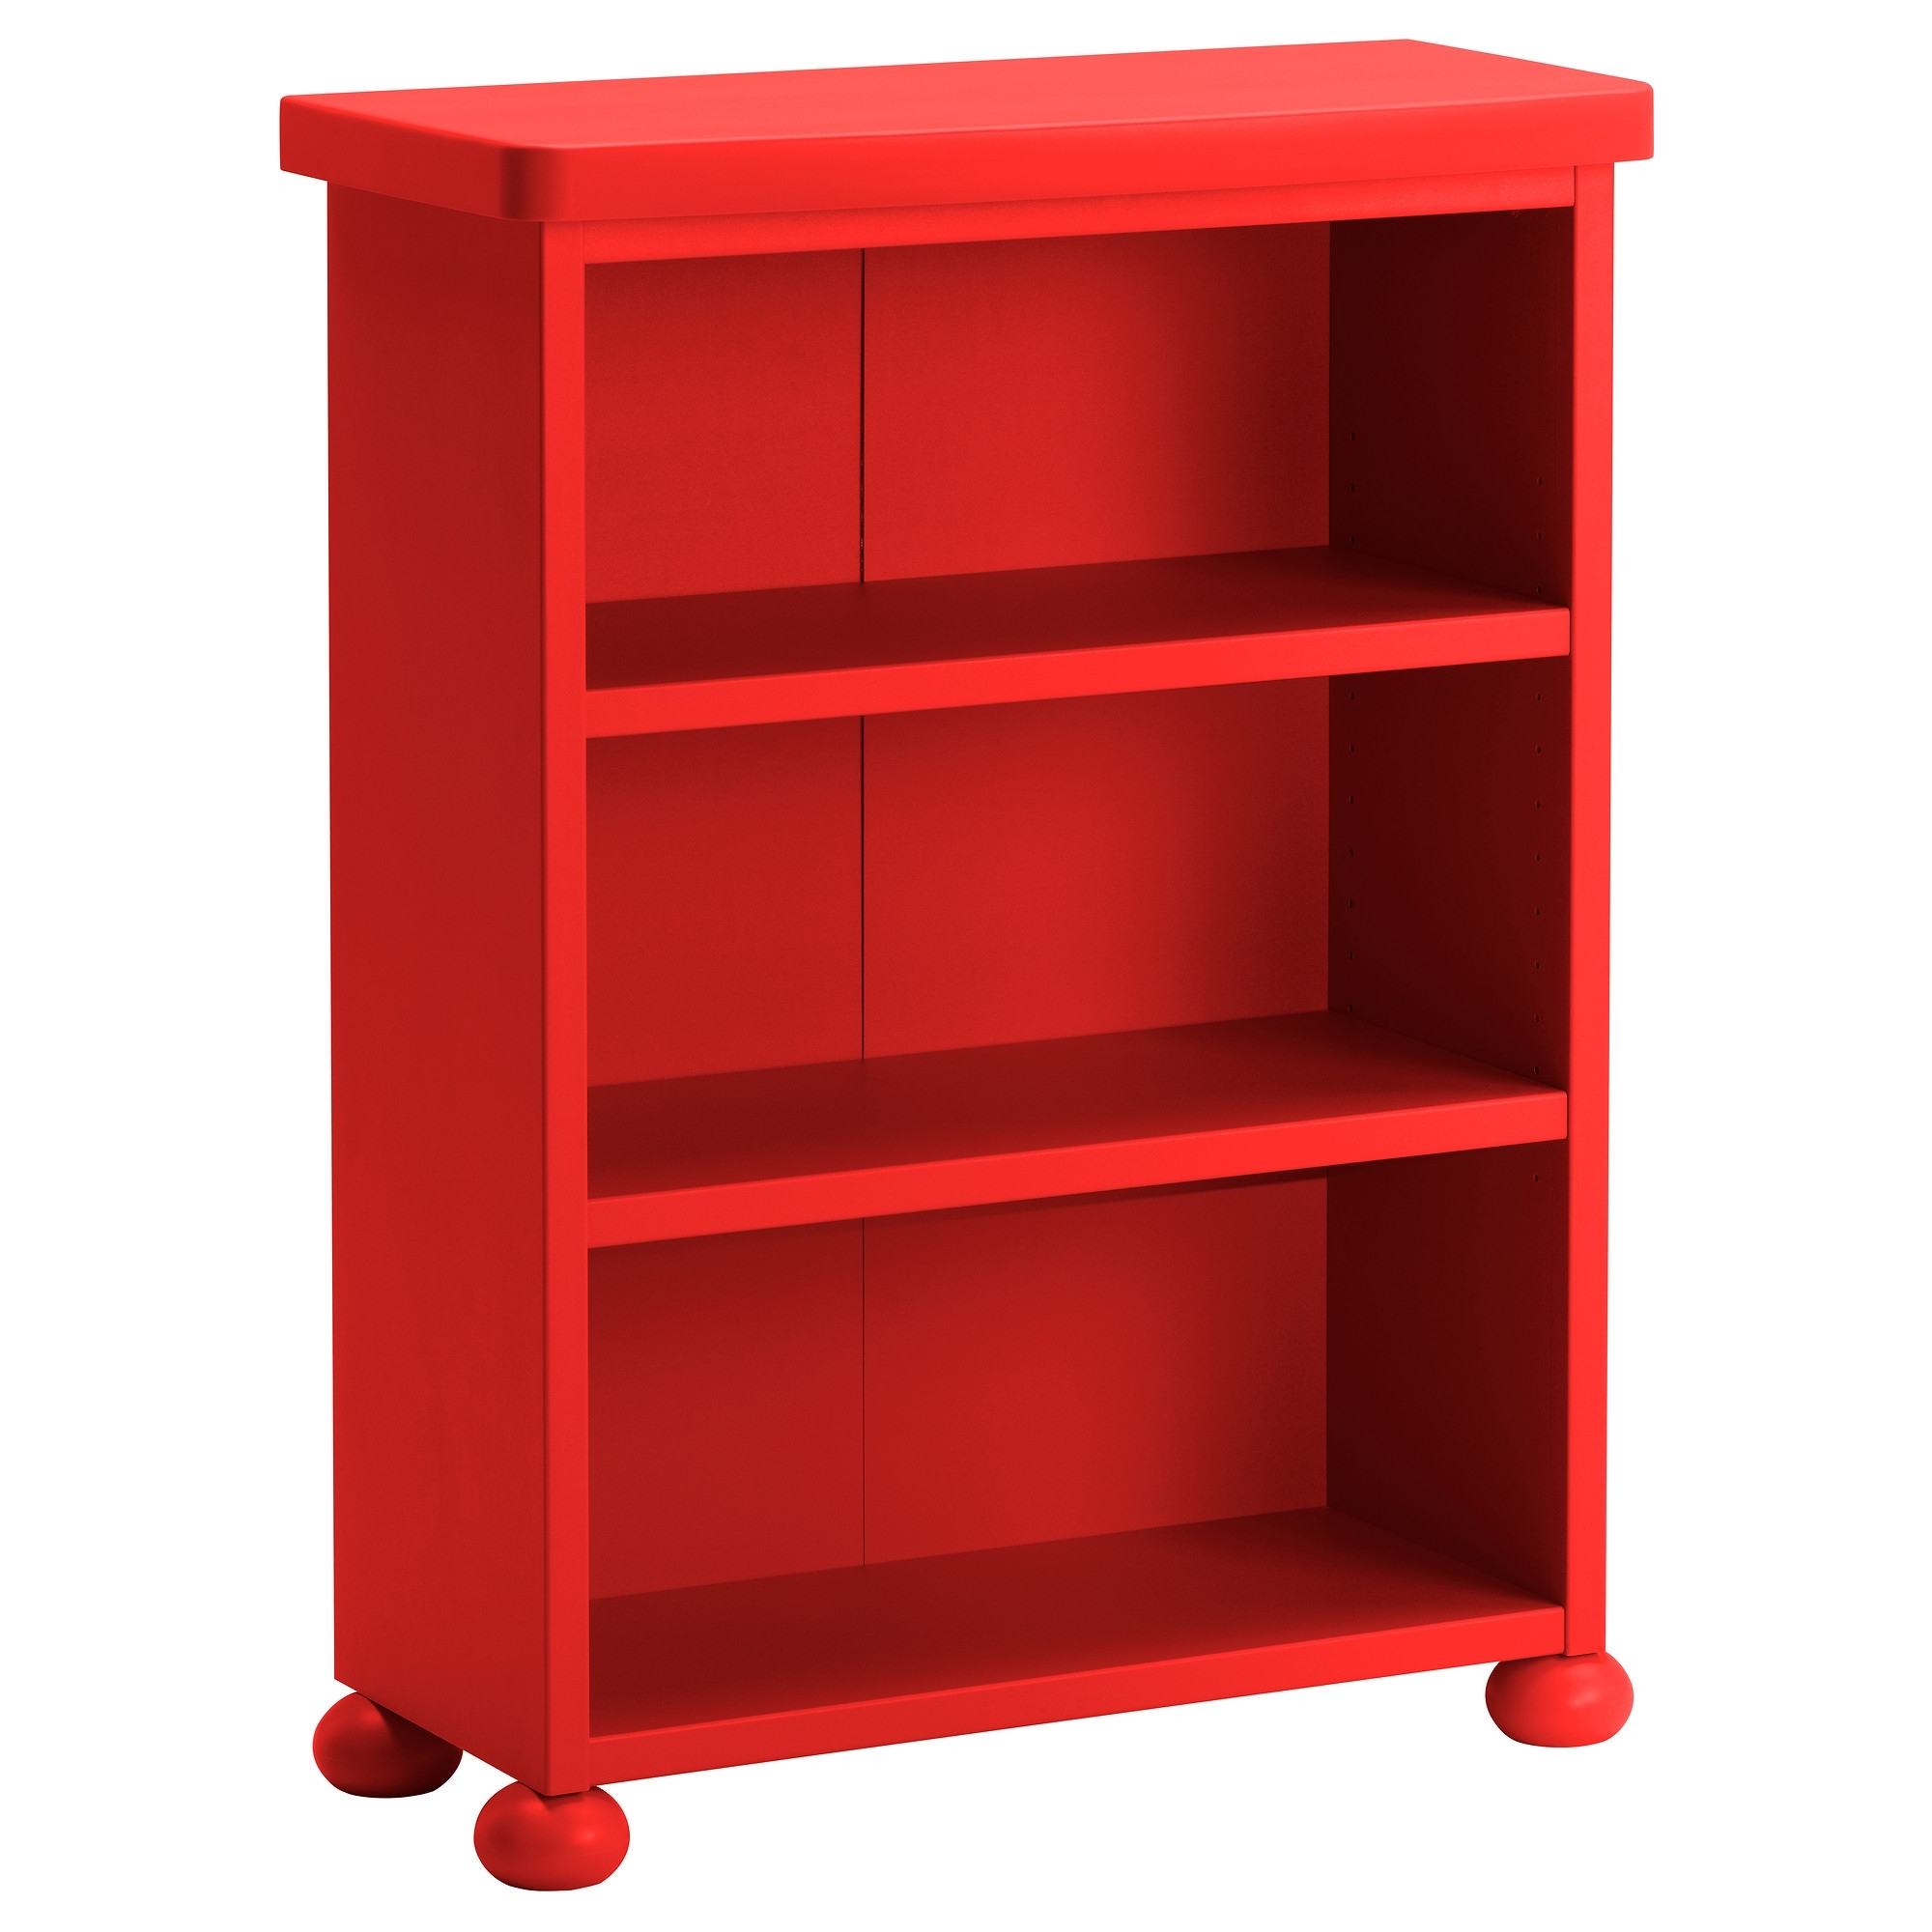 Most Recent Furniture Home: Fresh Ikea Red Bookcase On Shelf Bookcases With With Regard To Red Bookcases (View 8 of 15)